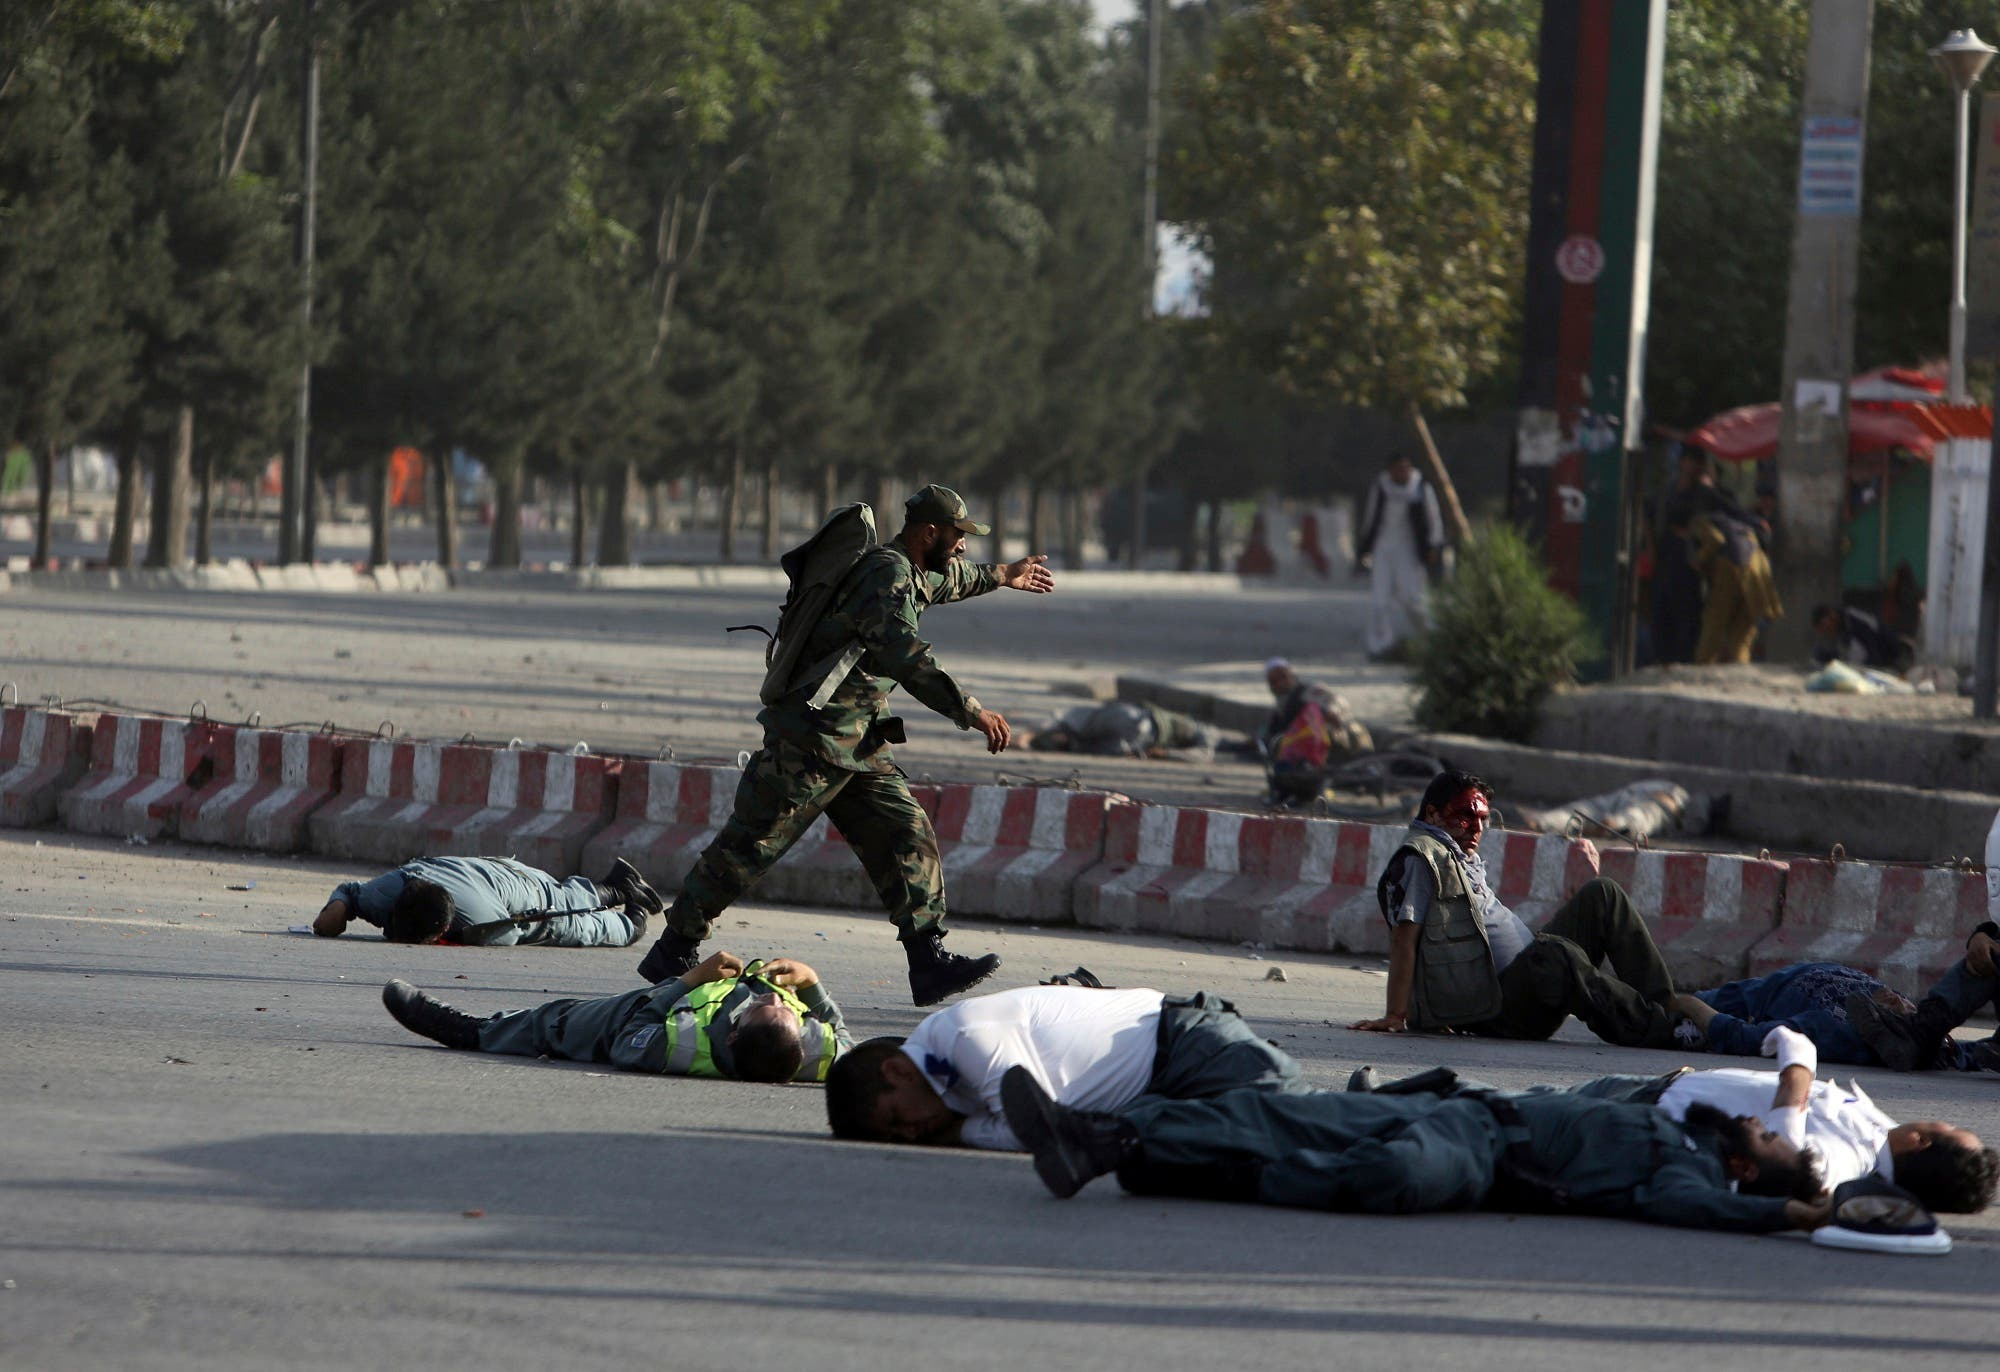 Afghan security personnel and traffic police lie on the ground after a suicide attack near the Kabul Airport, in Kabul, Afghanistan, Sunday, July 22, 2018. (AP)